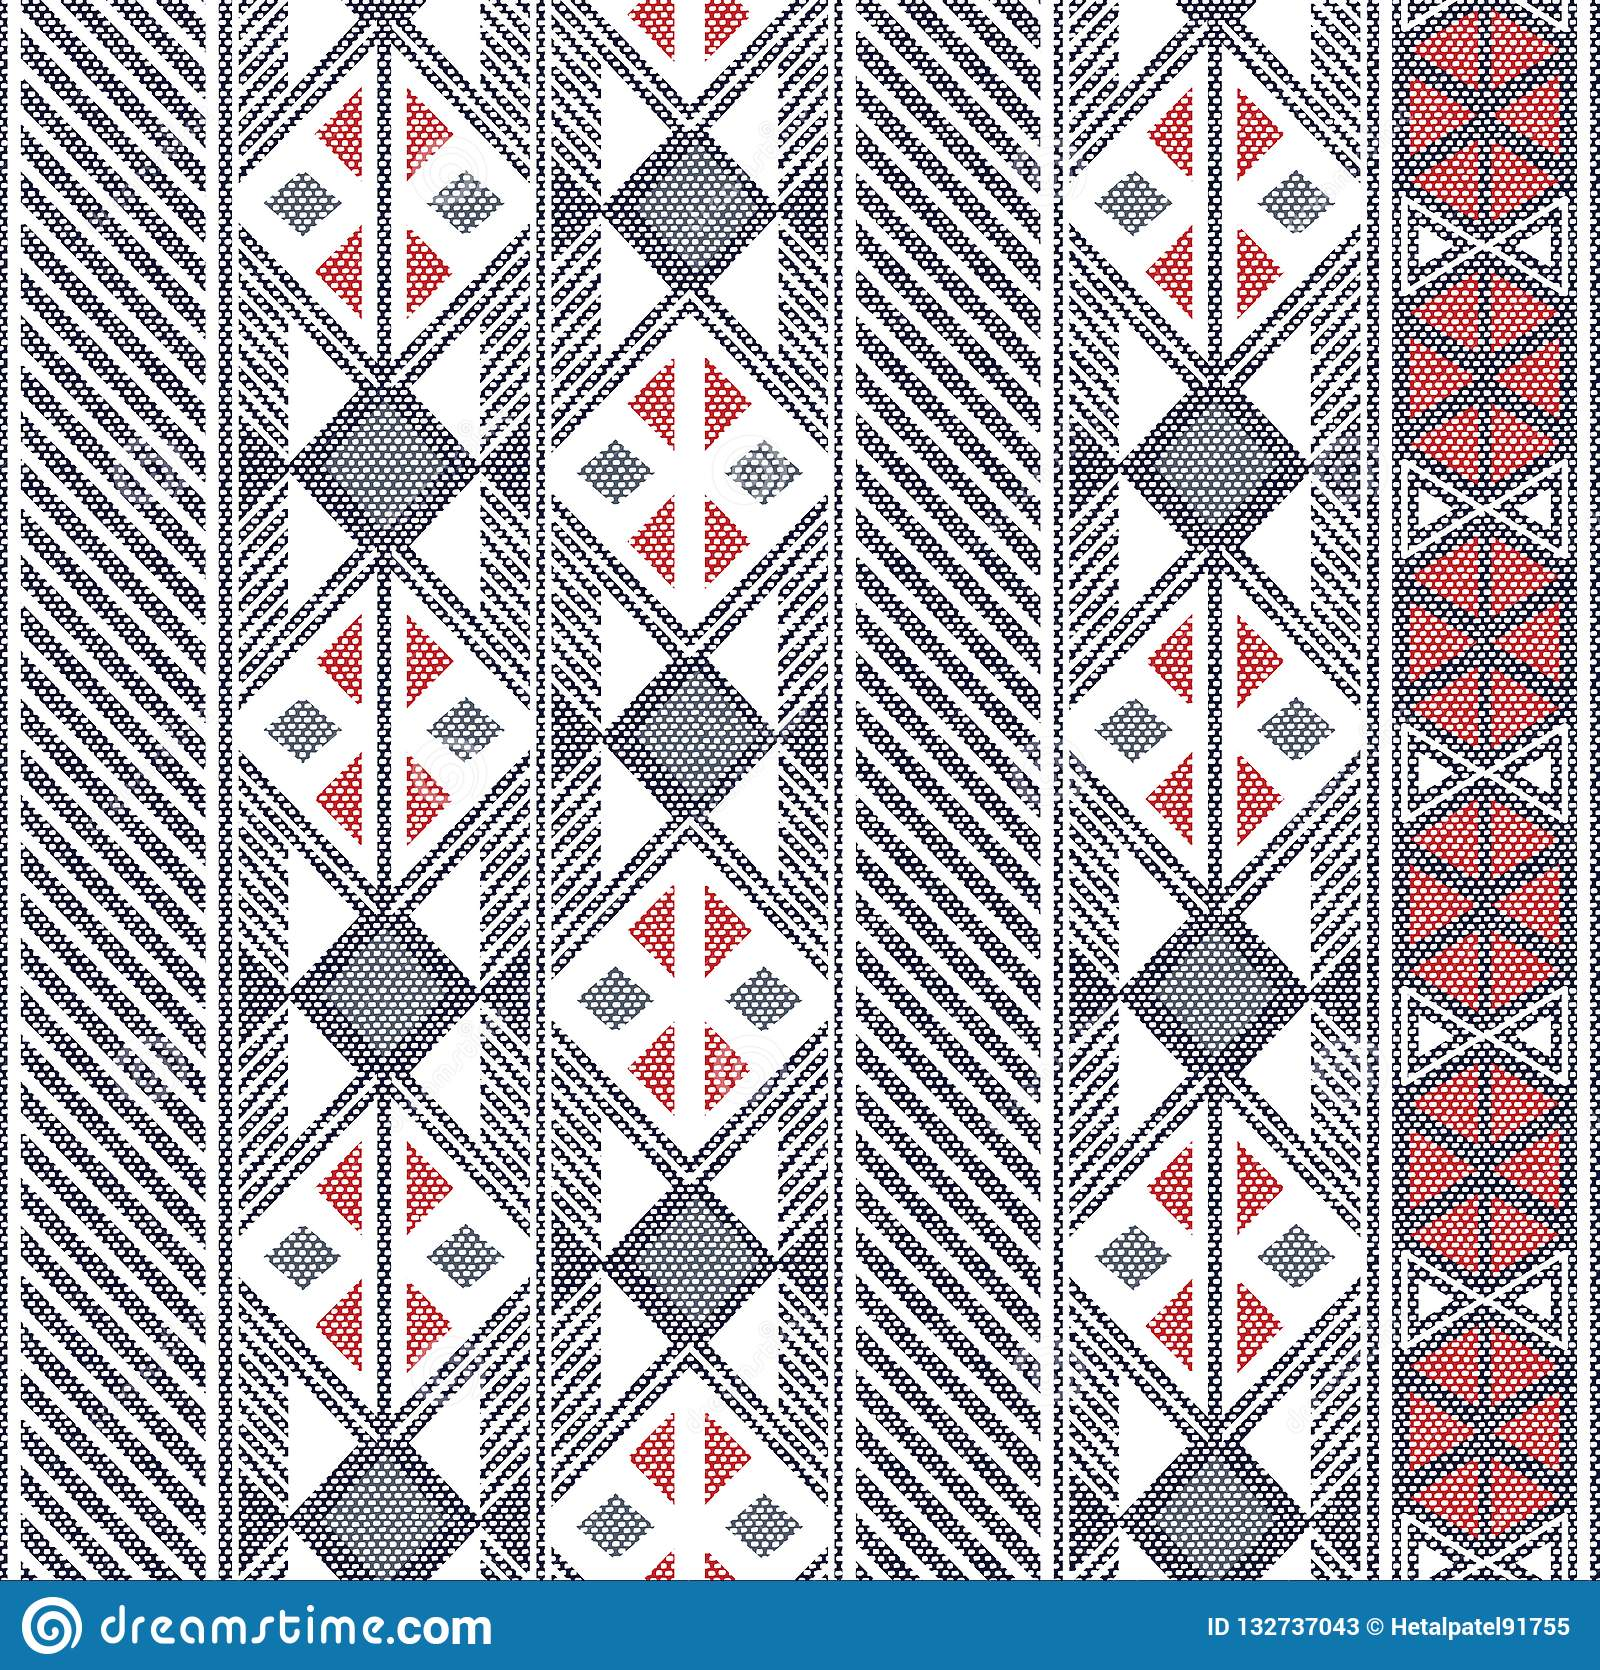 Seamless Abstract shapes pattern in ethnic pattern